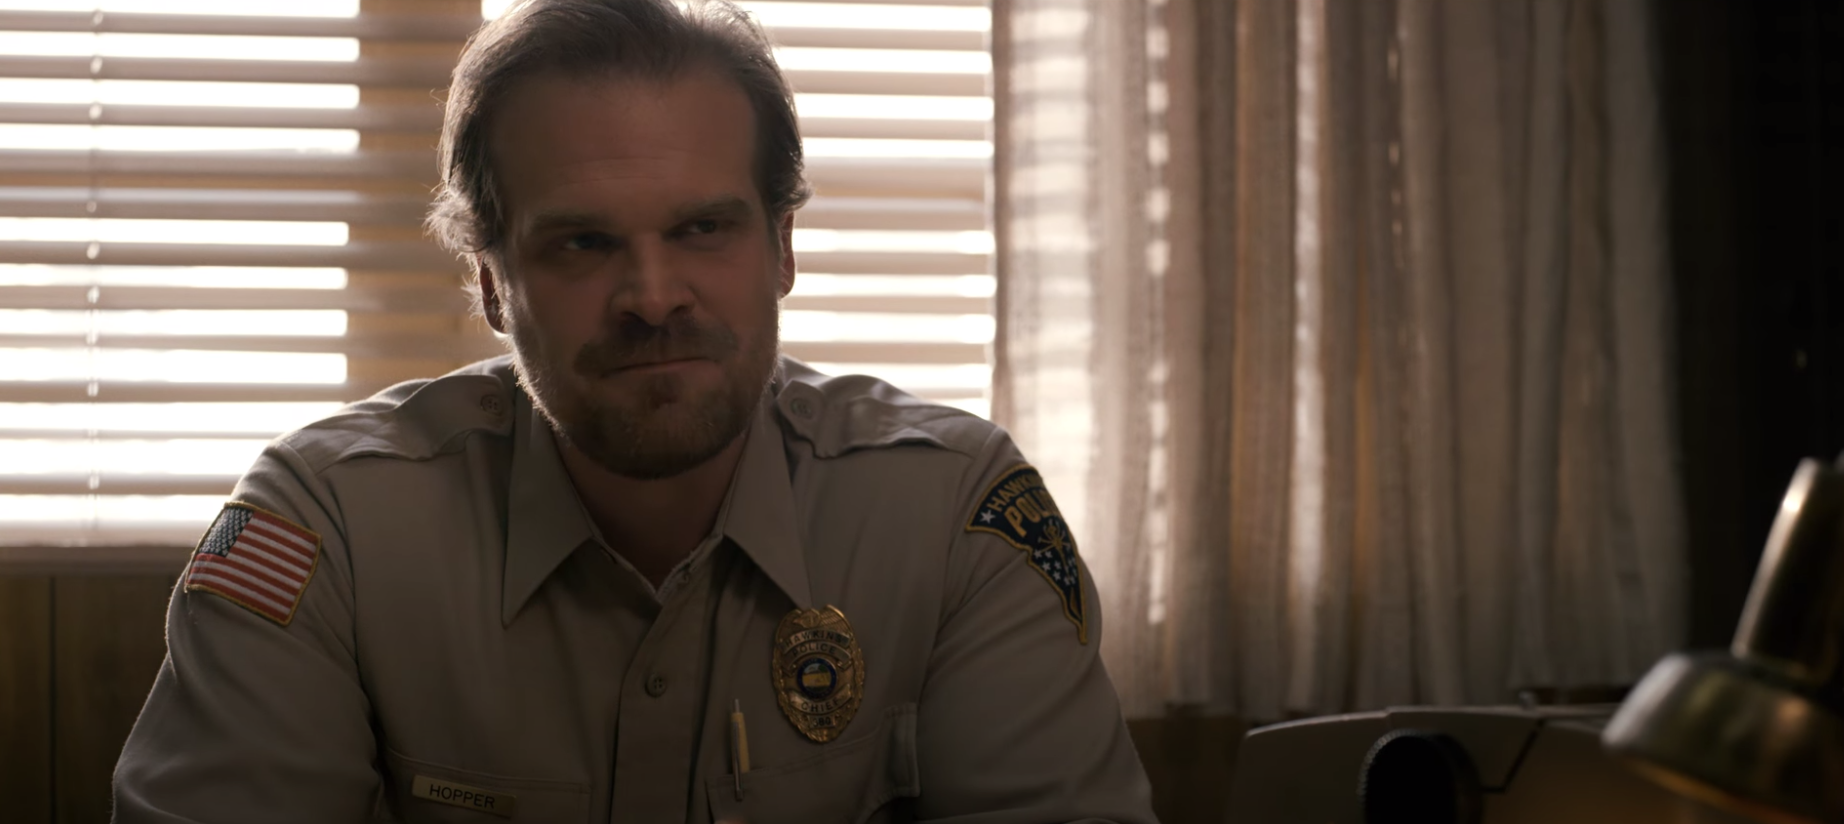 """Hopper sits at his police chief desk while wearing the uniform in """"Stranger Things."""""""